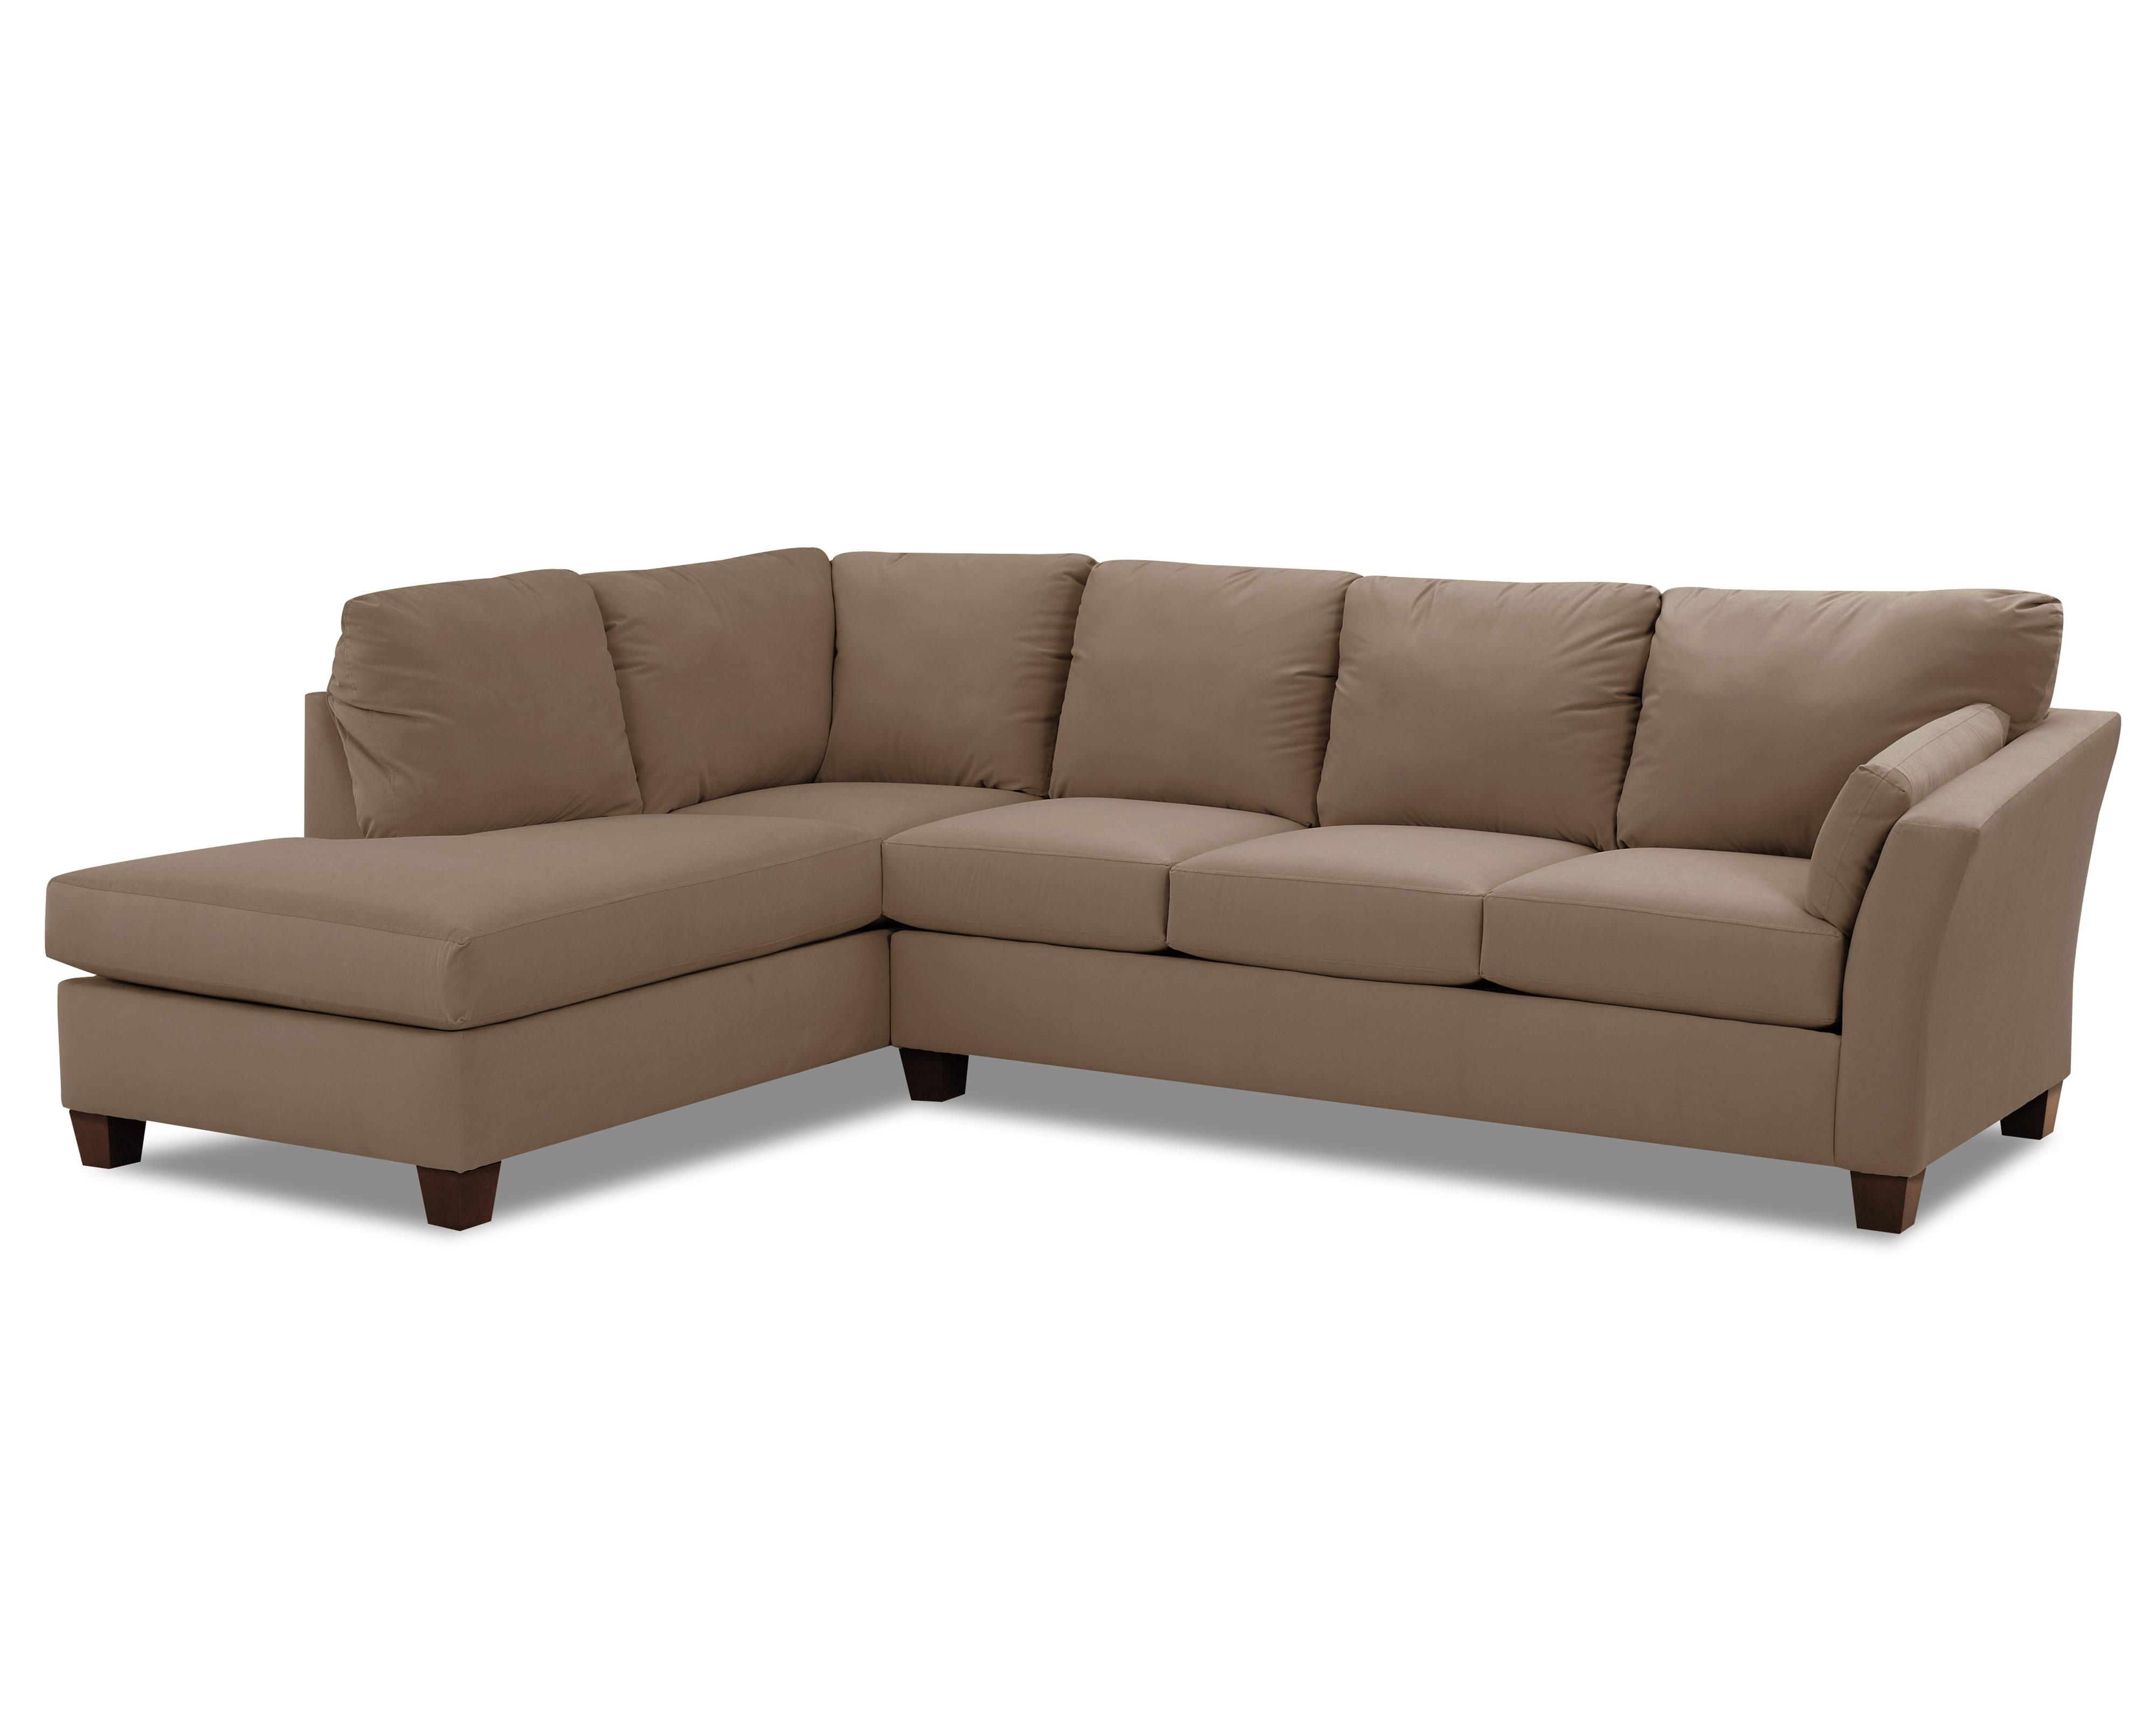 Klaussner Drew Two Piece Sectional Sofa - Item Number: E16LCHASE+E16RS-LibreEarth